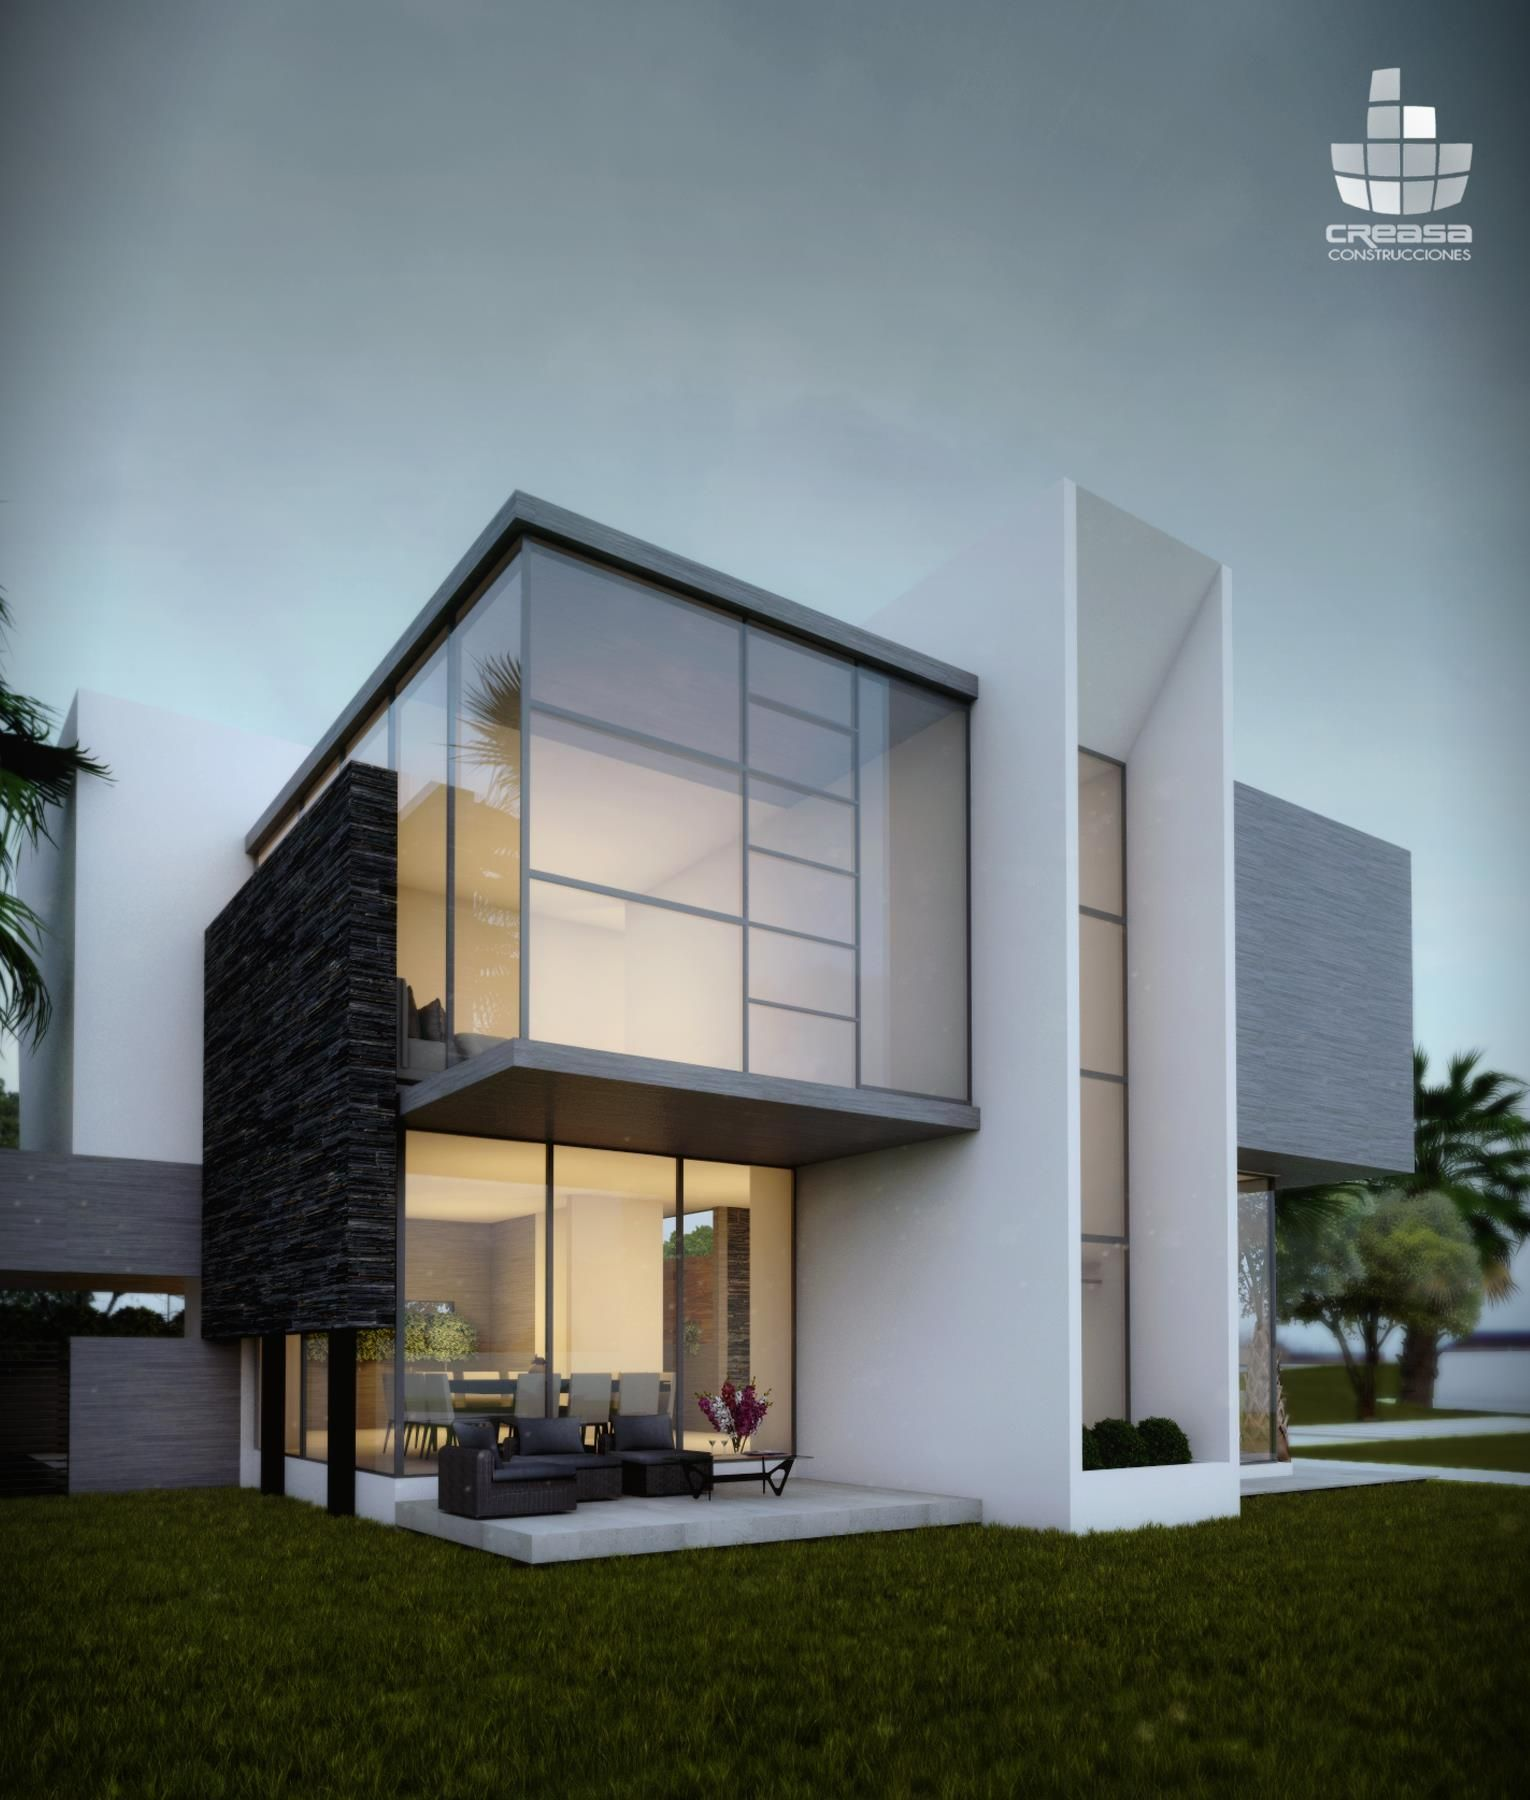 Creasa  Modern architecture  Pinterest  Villas House and Architecture